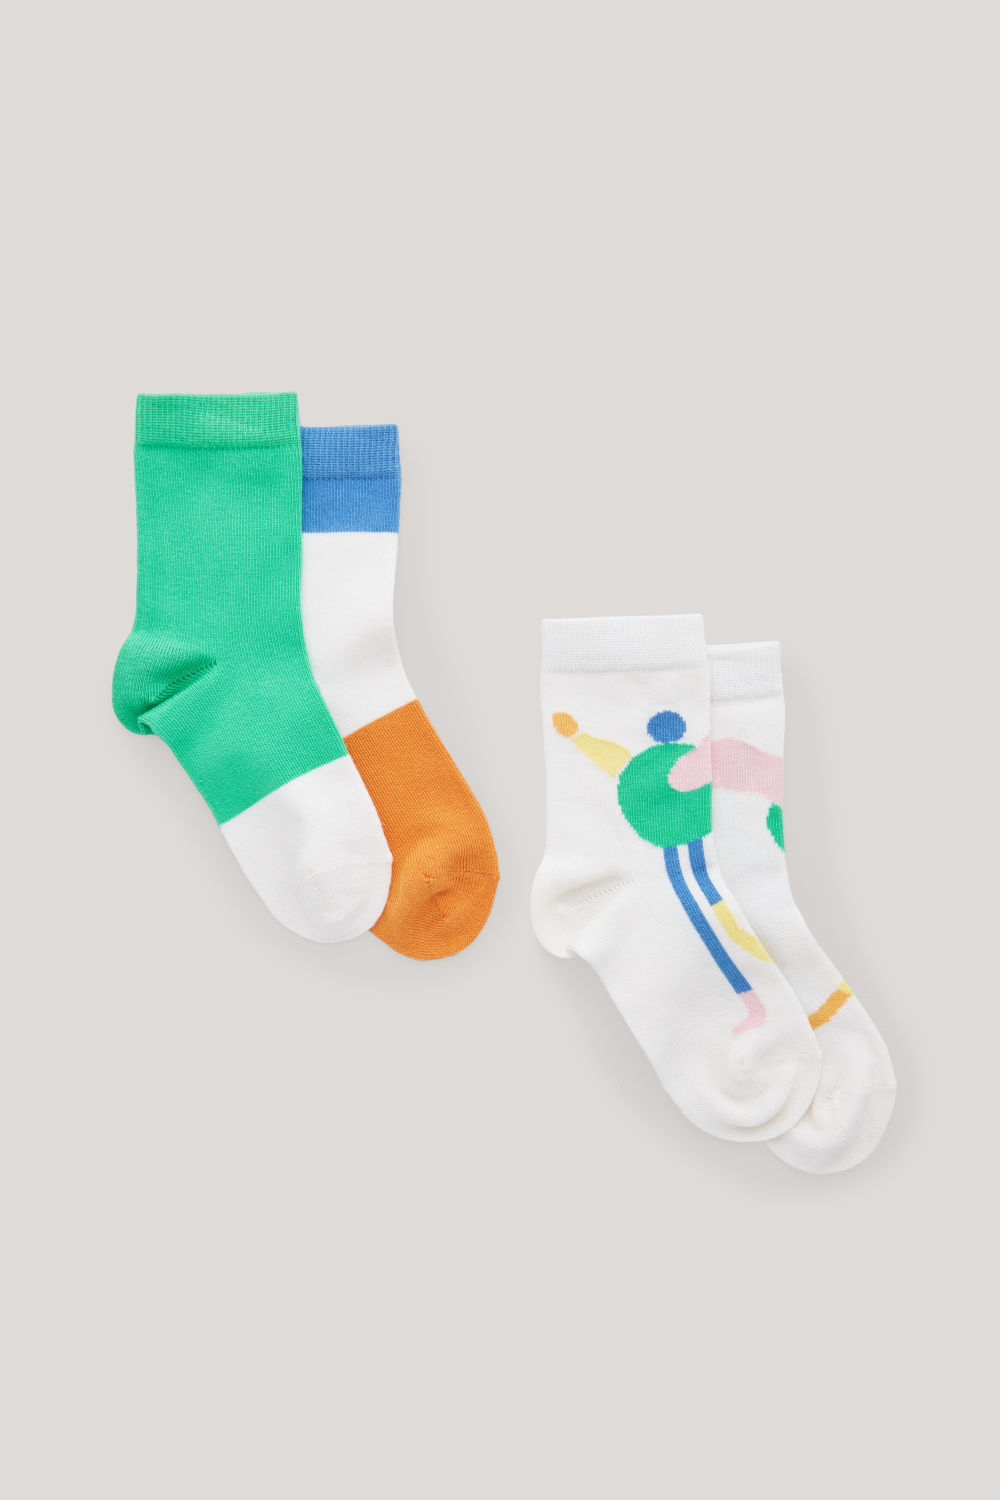 ILLUSTRATED COTTON SOCKS